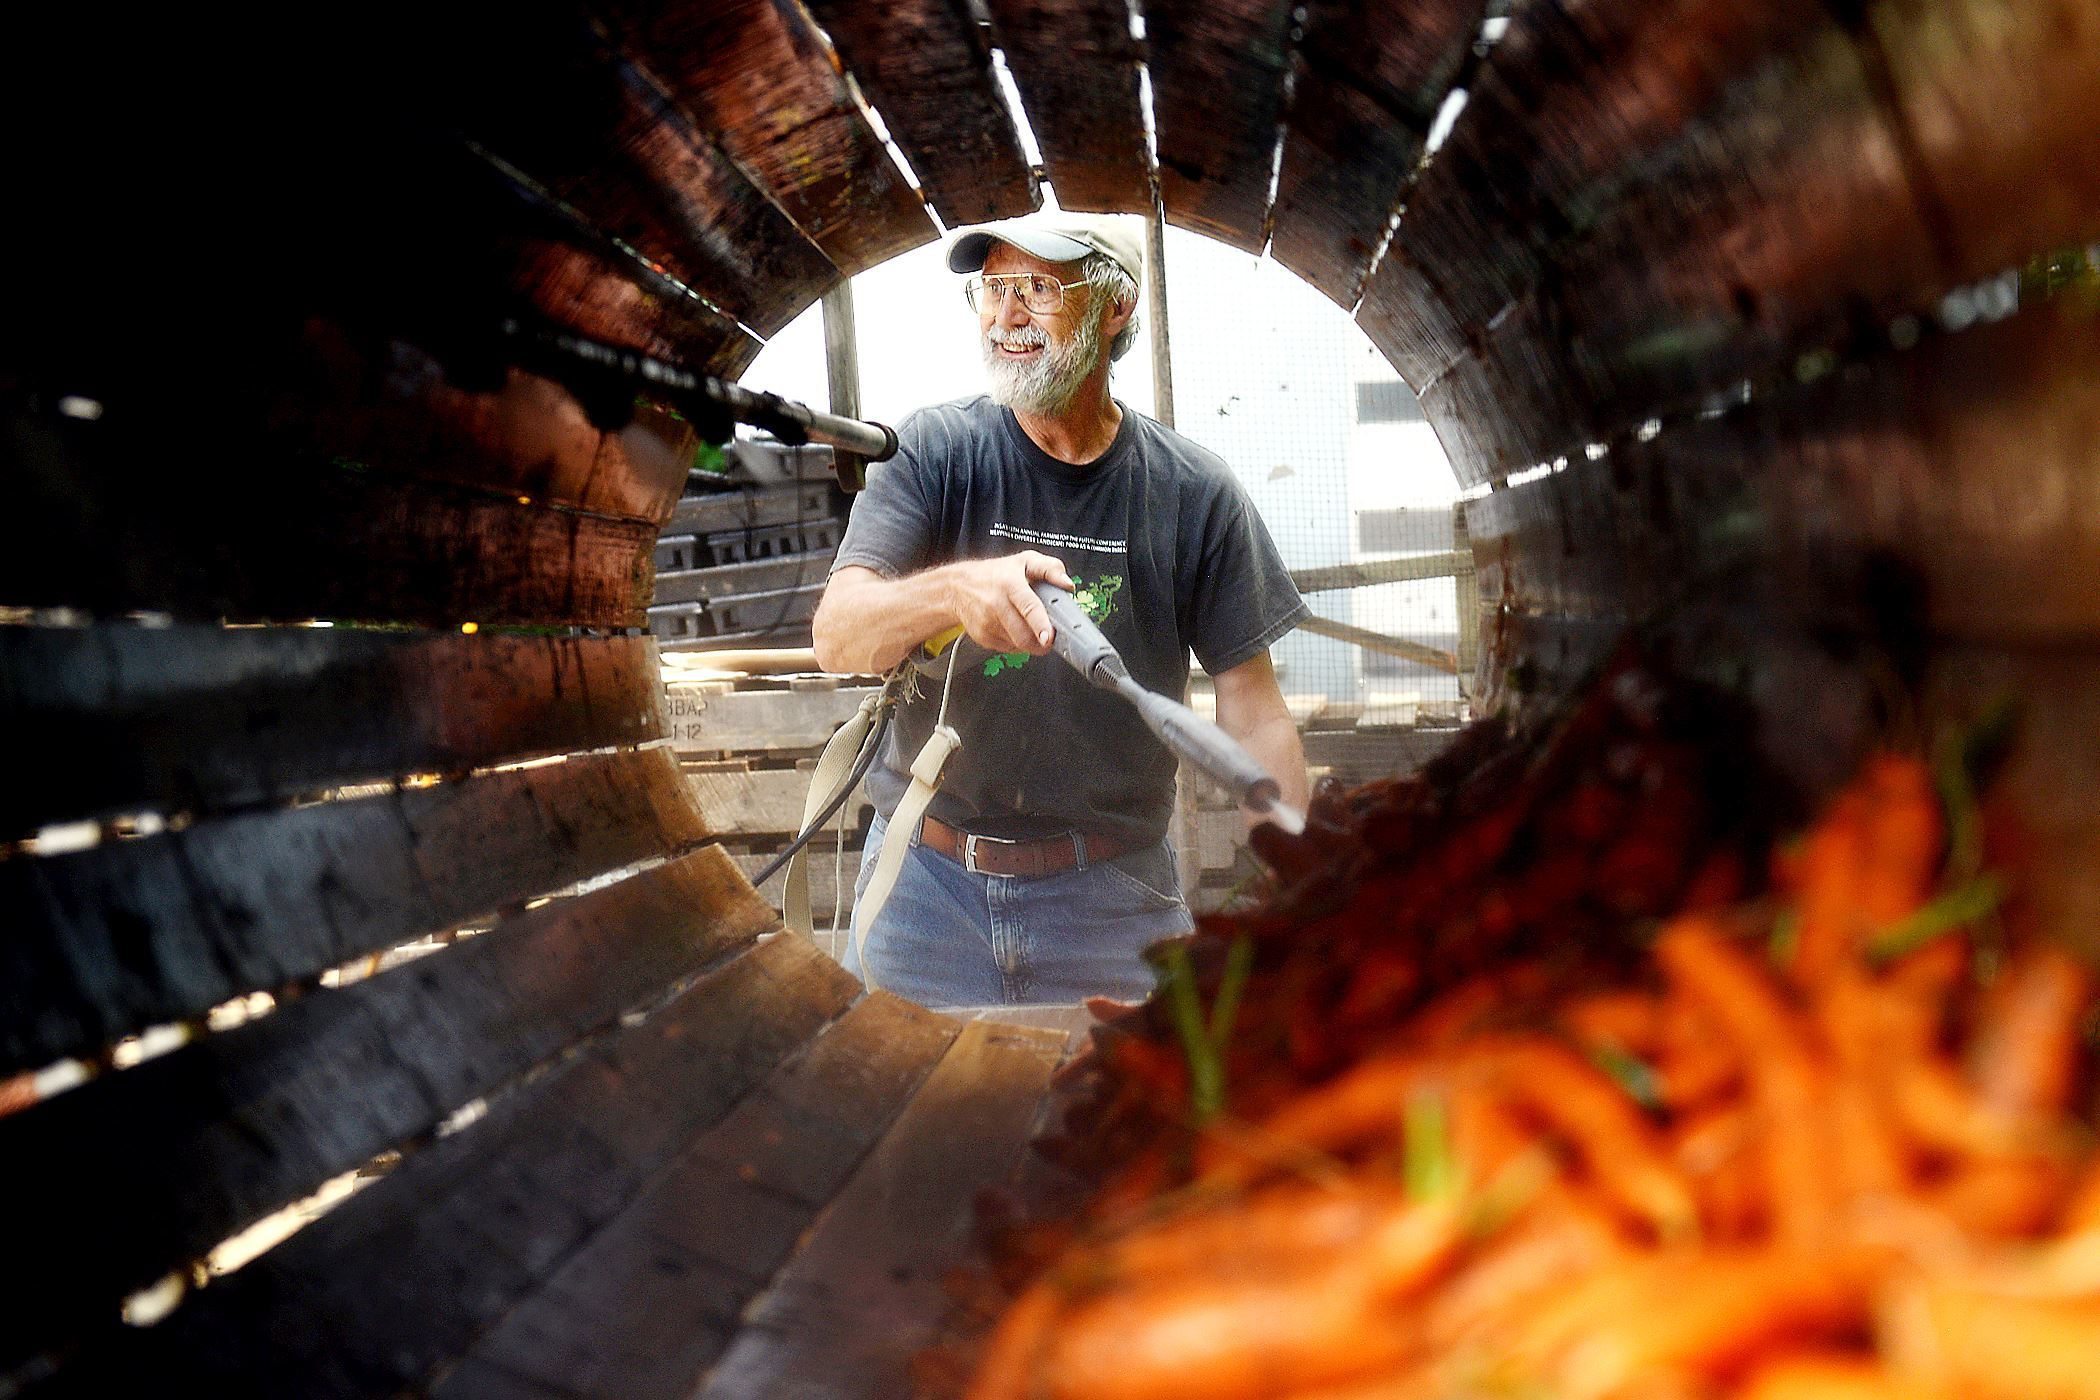 07212014jrOrganicLocal1 Don Kretschmann, owner of Kretschmann Family Organic Farm, cleans carrots July 21 at his farm in Rochester.